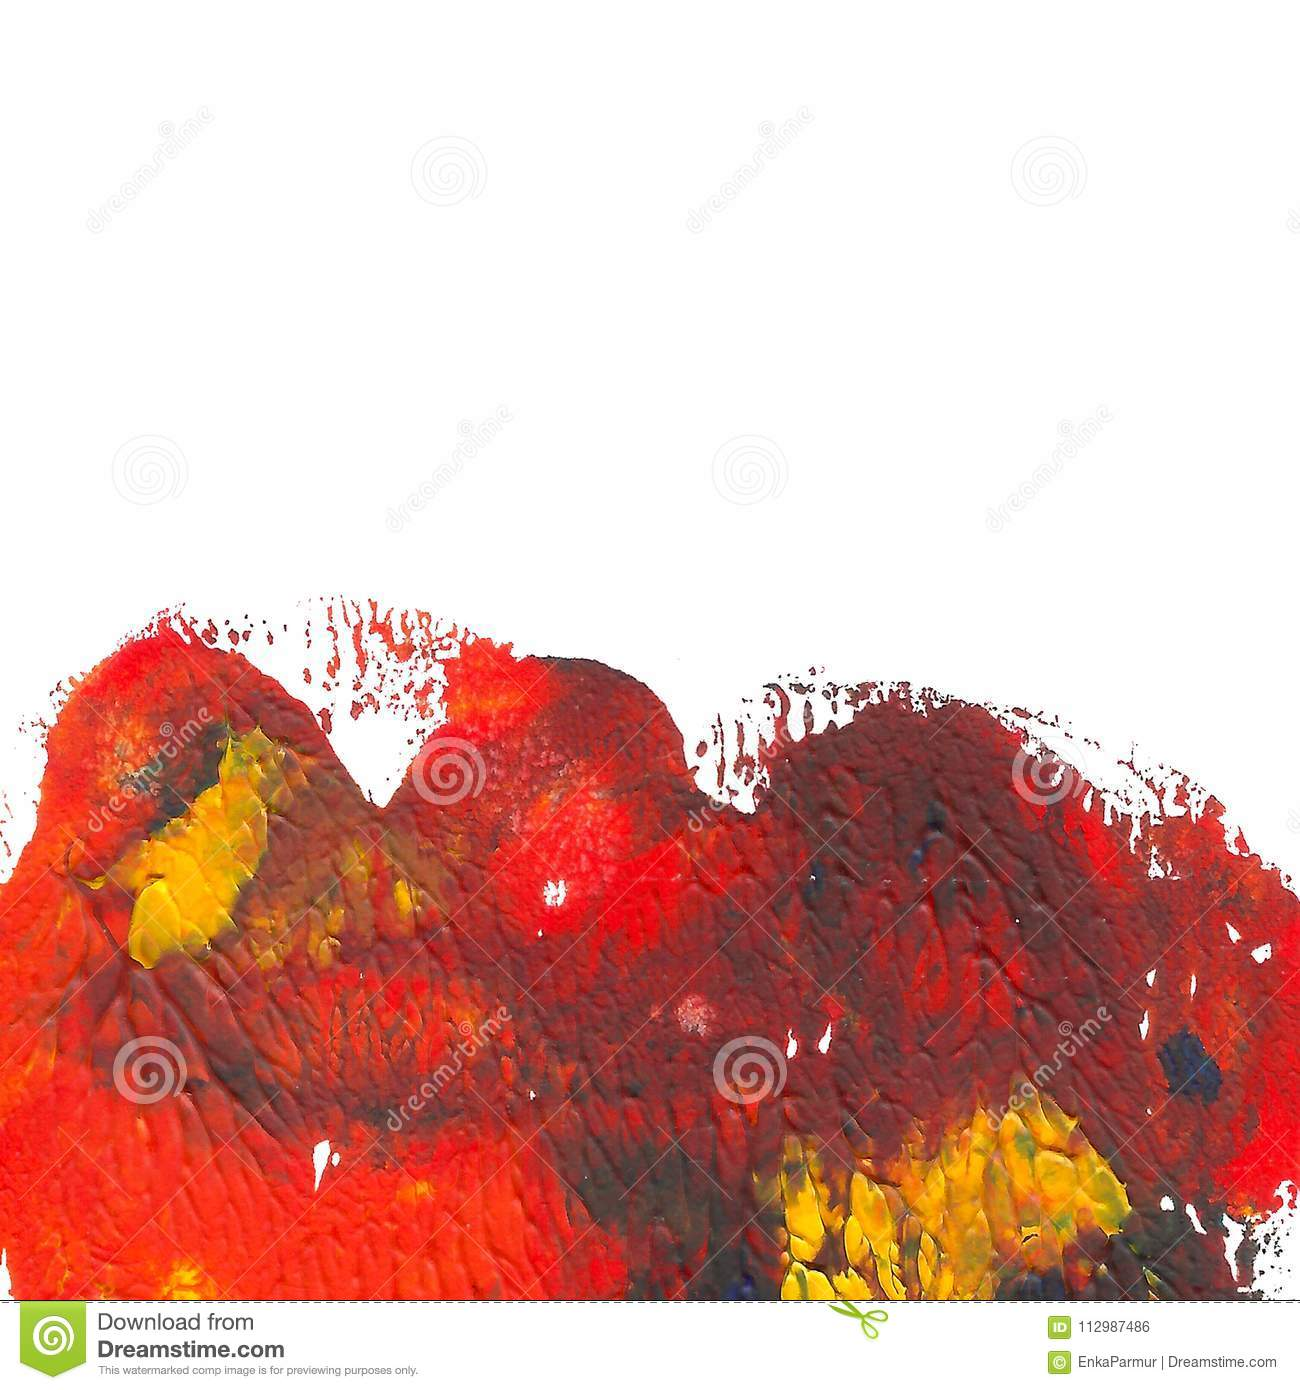 Abstract acrylic painted background. Red, orange, blue, yellow vibrant color. Monotyped hand drawn grunge